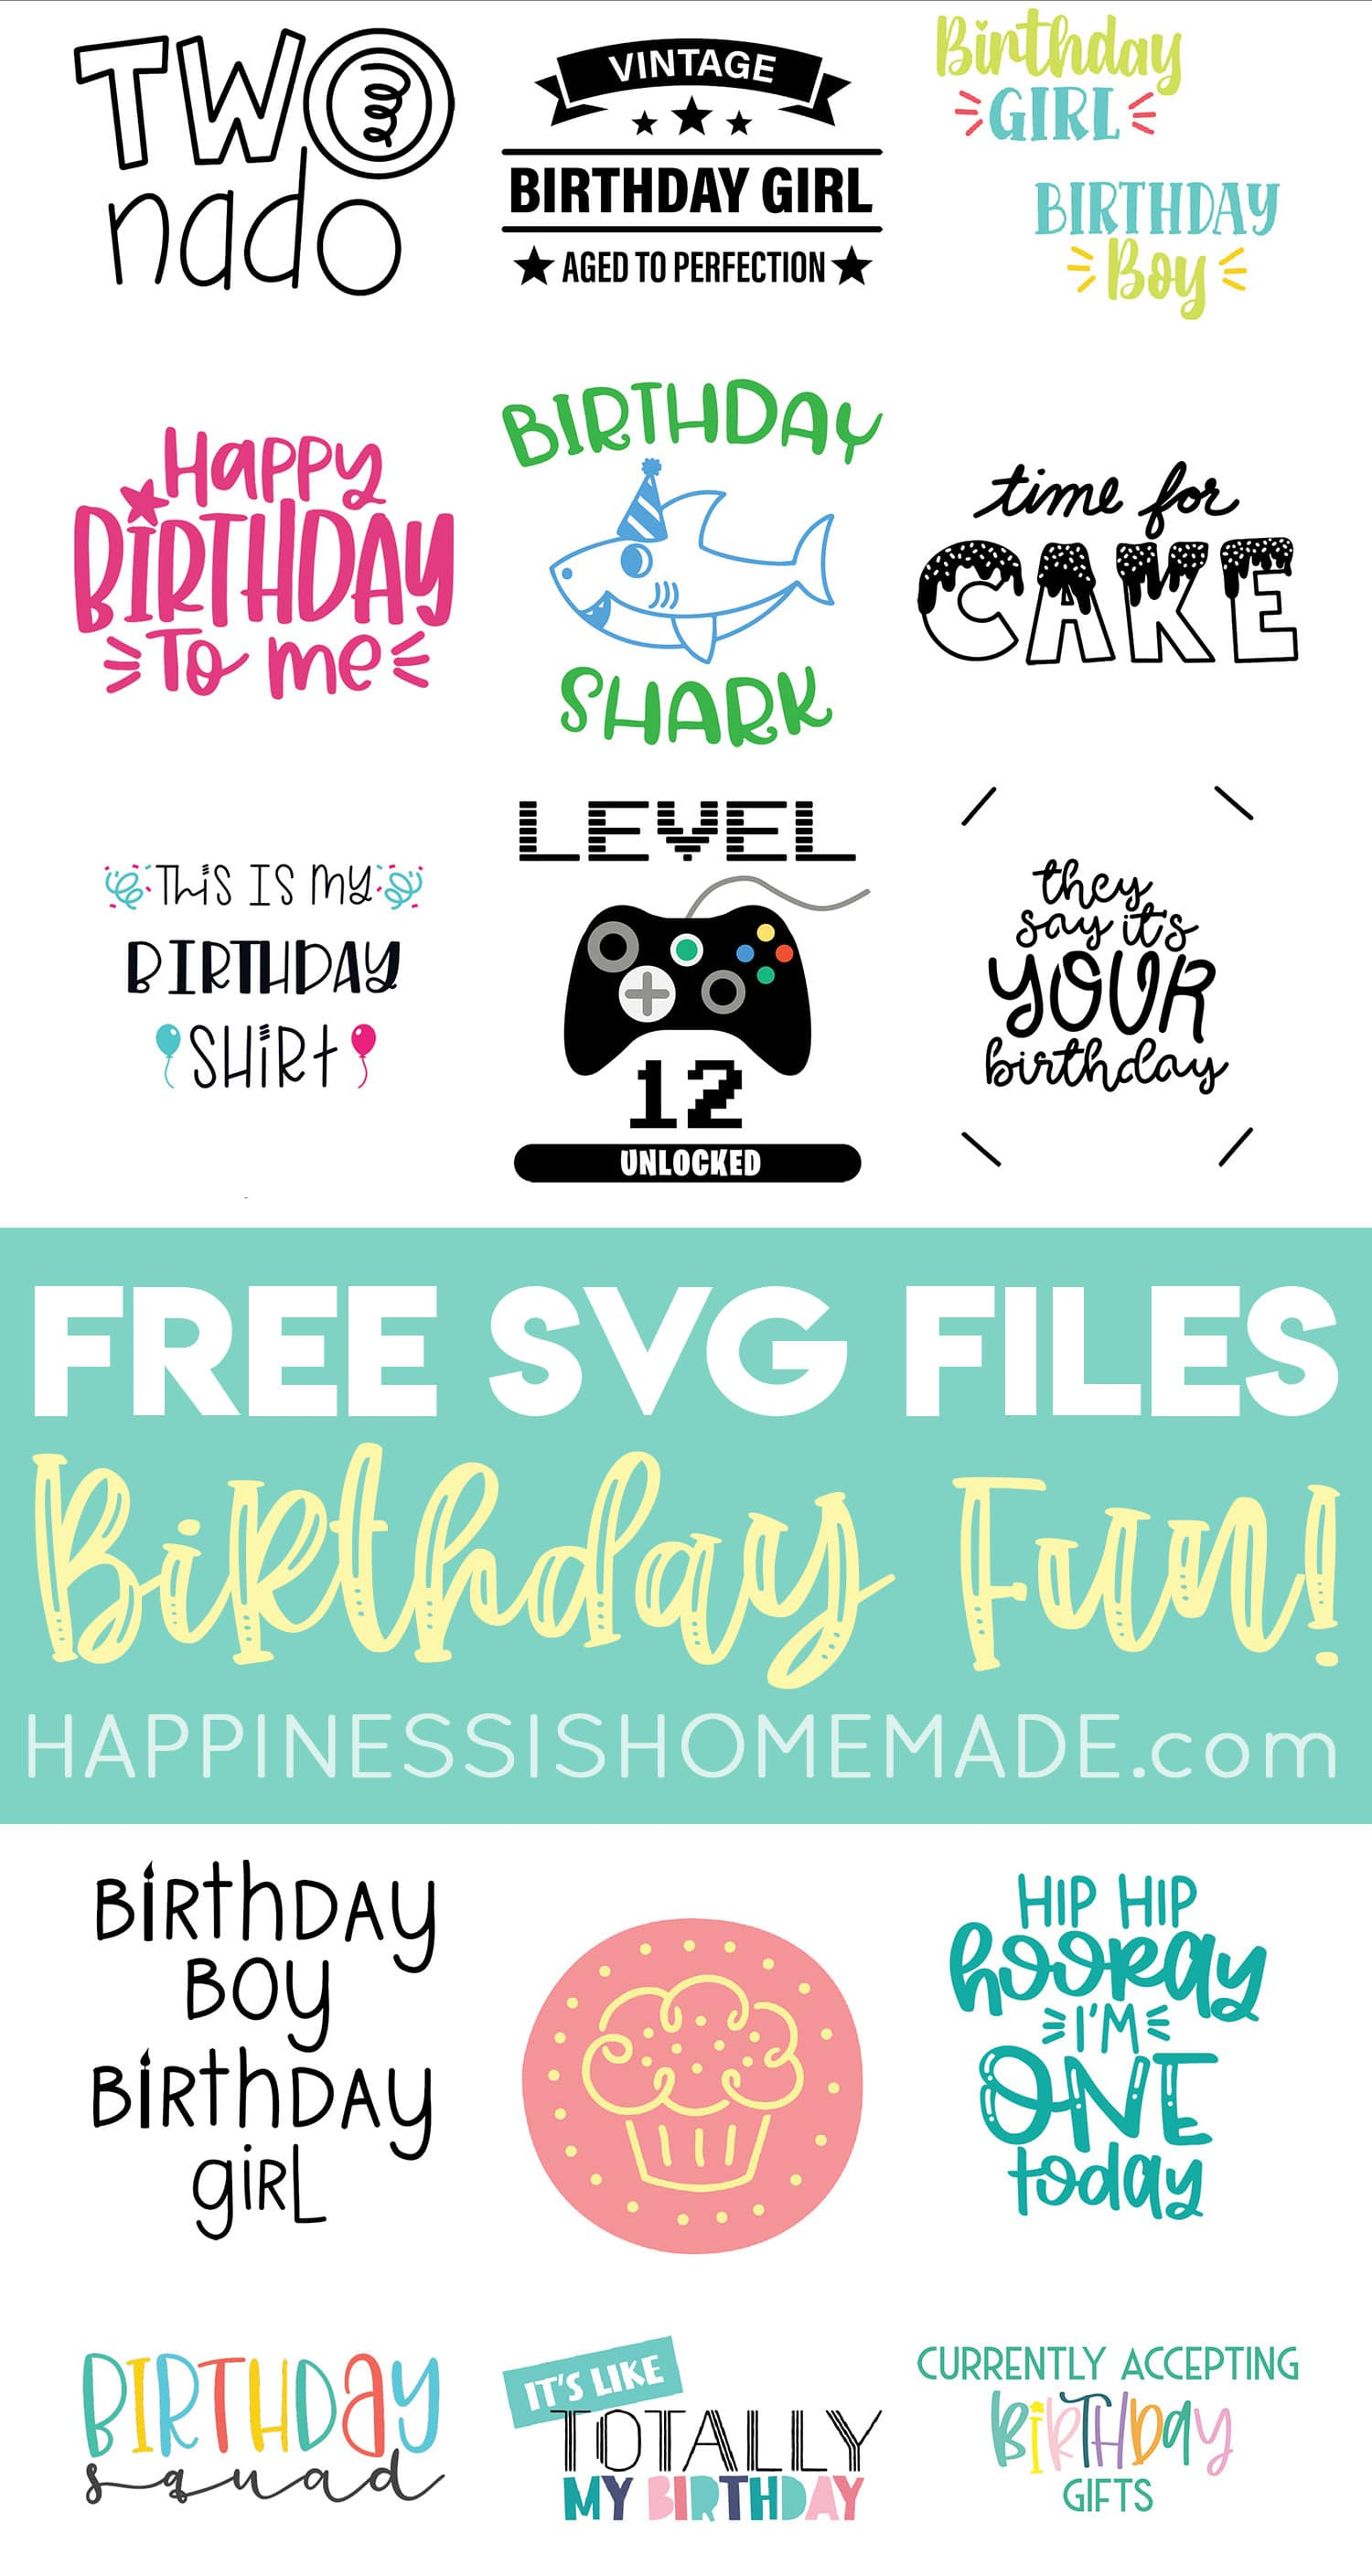 15 Free Birthday Svg Files Happiness Is Homemade